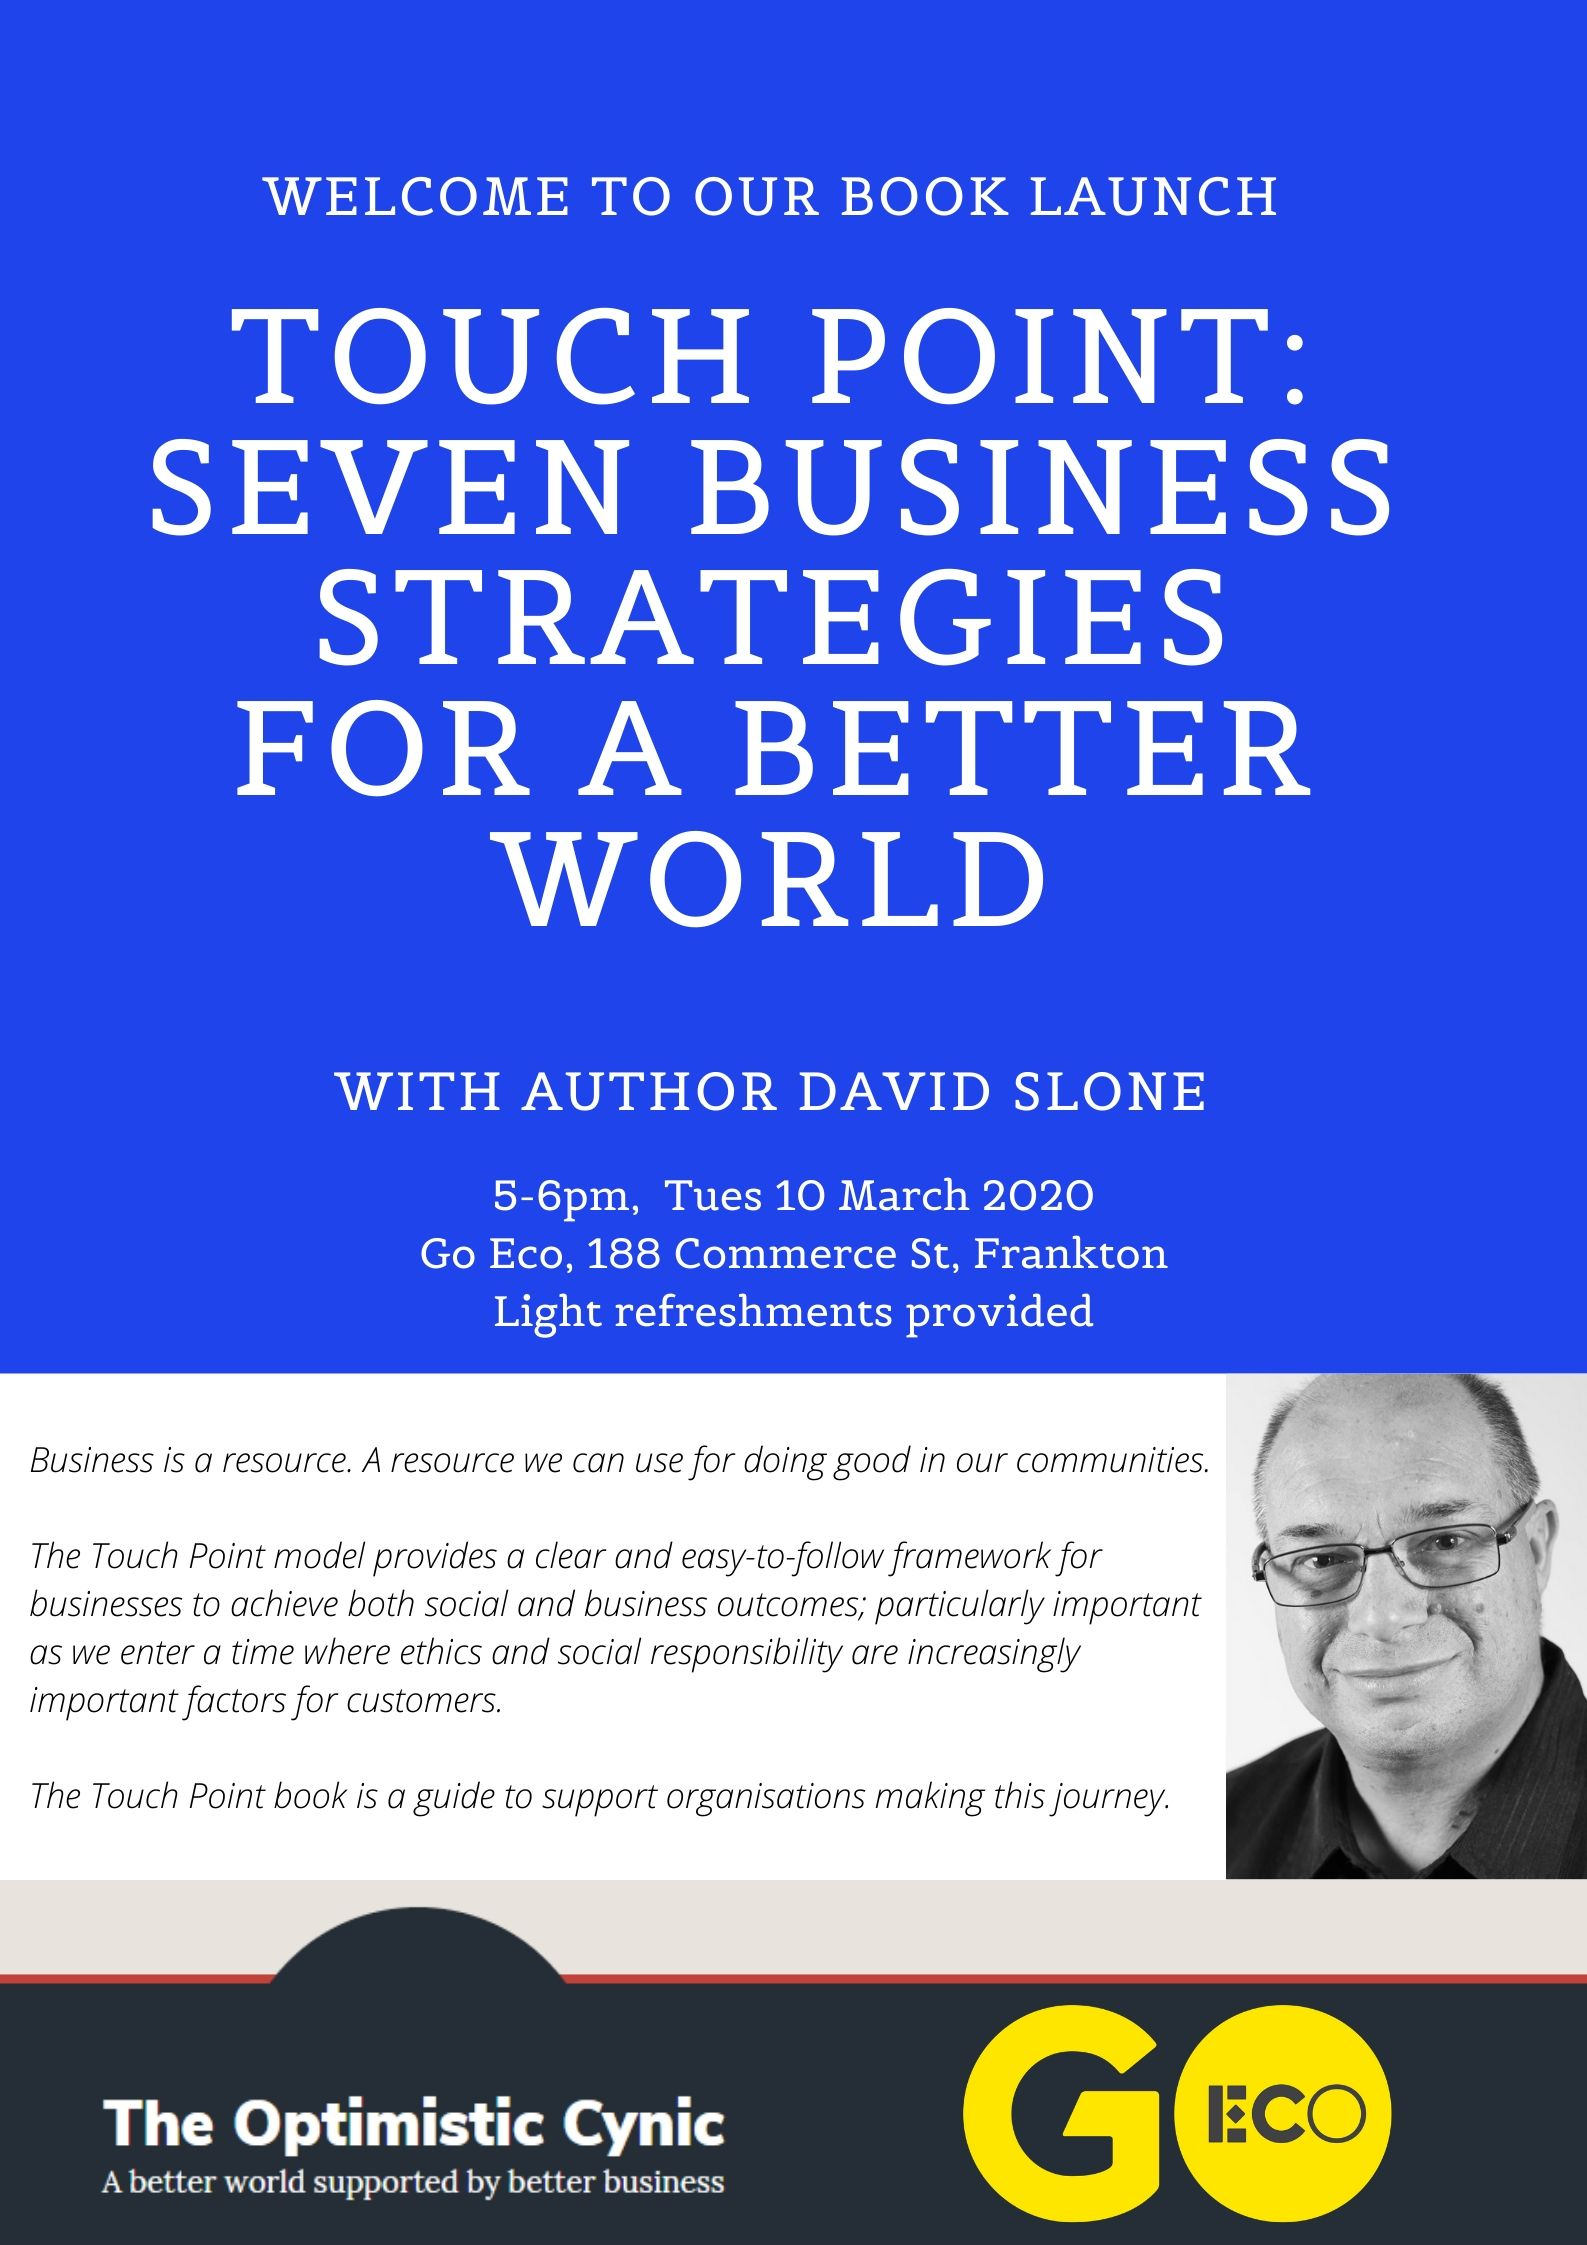 SEVEN BUSINESS STRATEGIES FOR A BETTER WORLD (1)